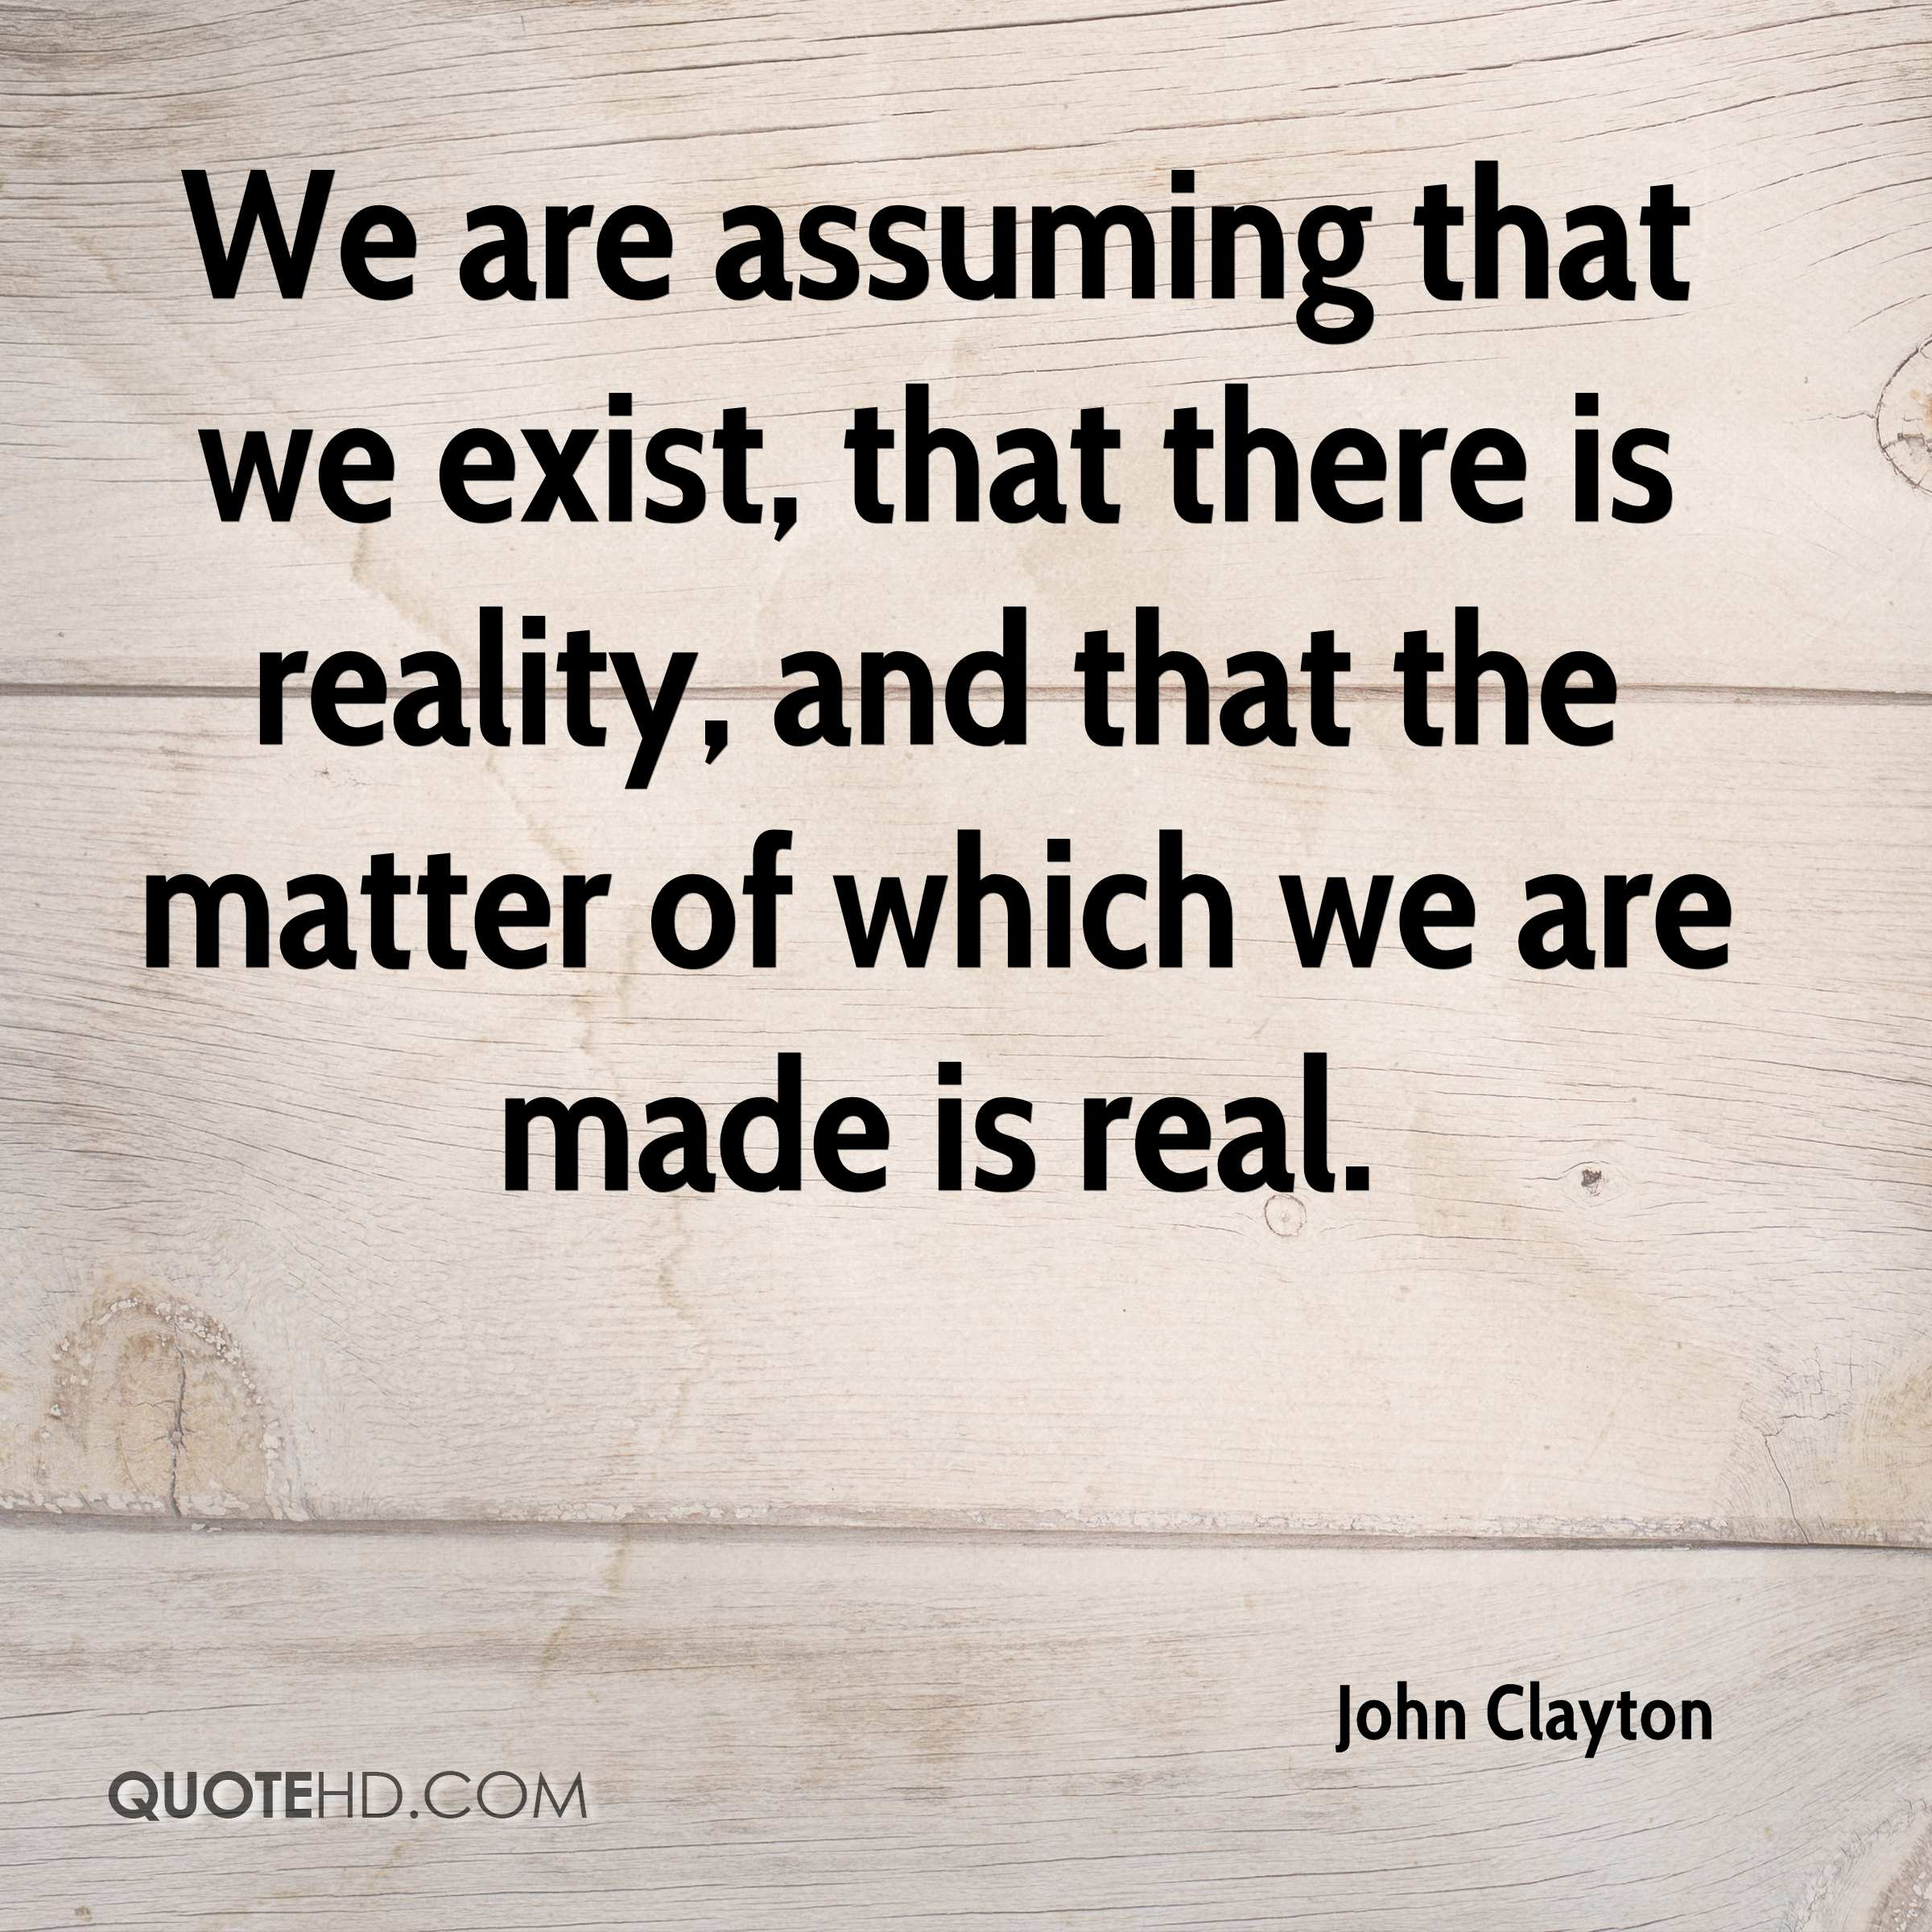 We are assuming that we exist, that there is reality, and that the matter of which we are made is real.